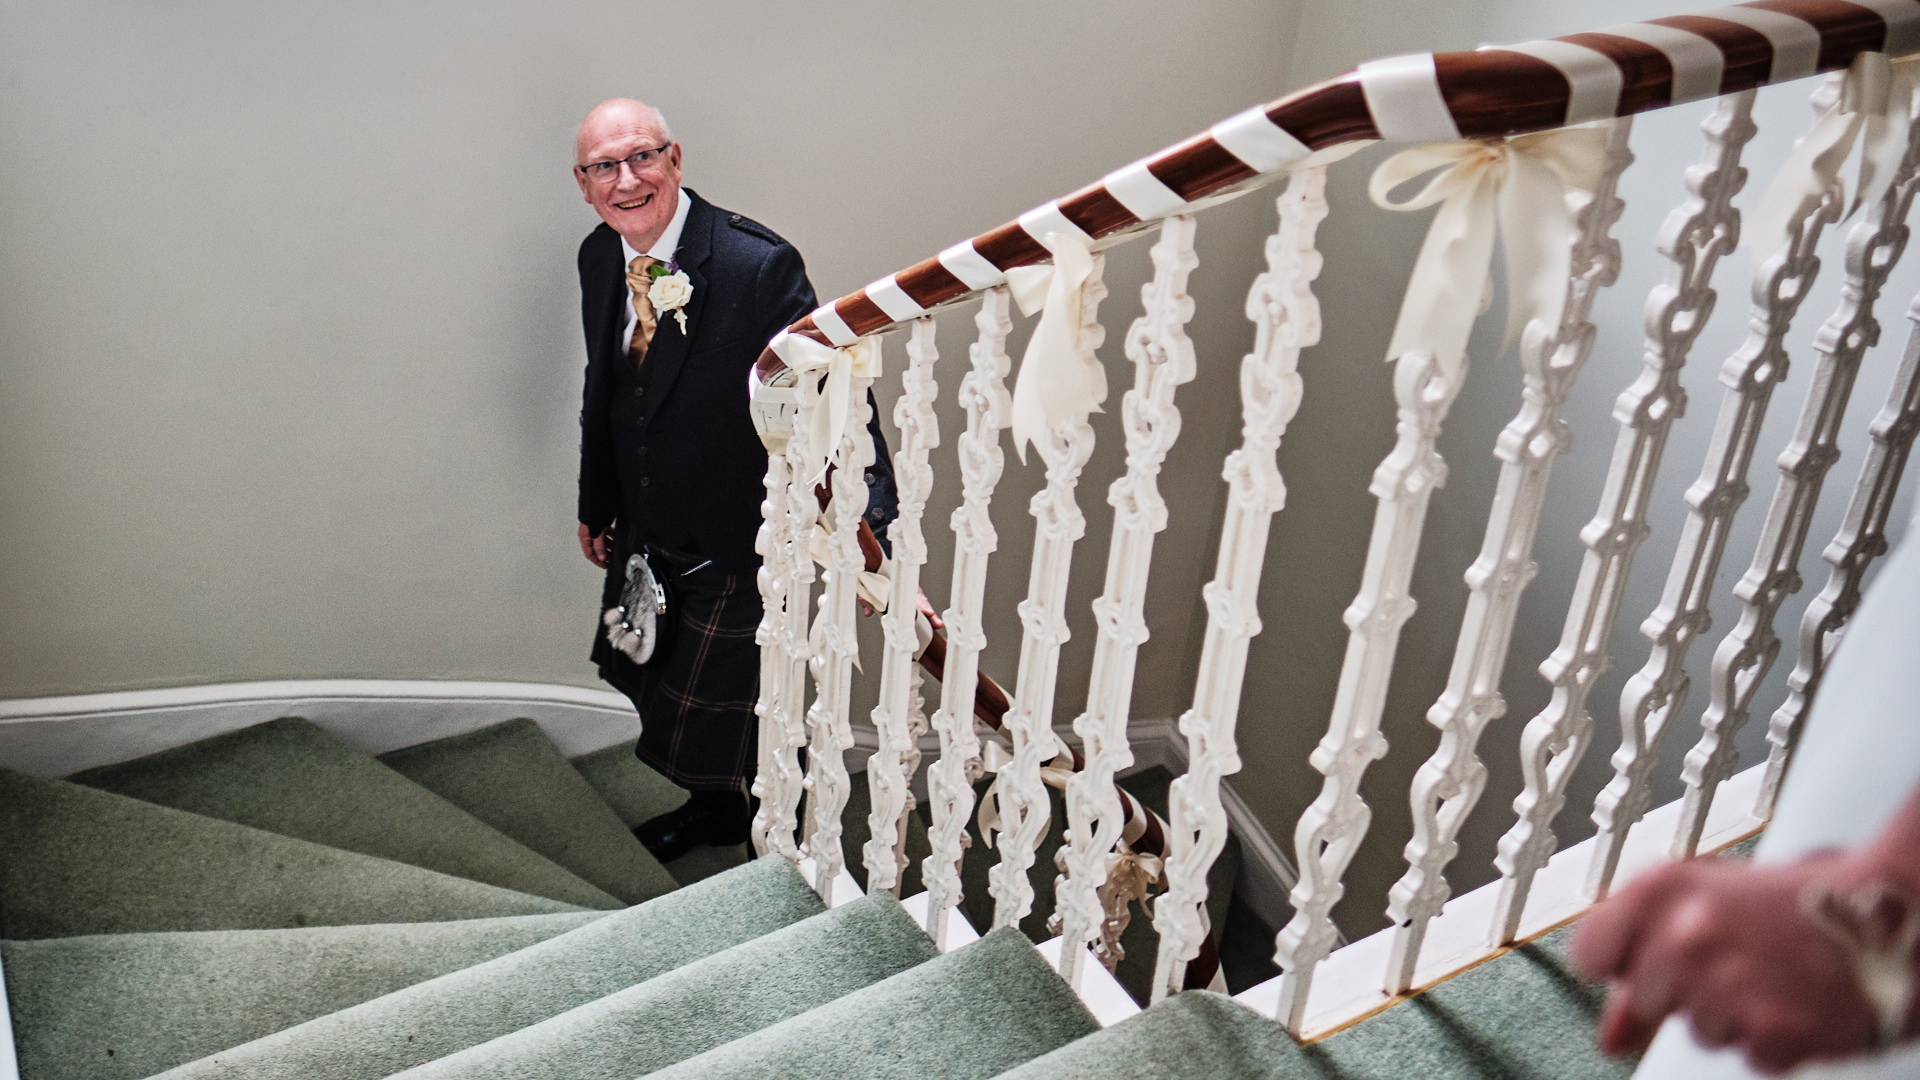 colour photograph of the father of the bride seeing his daughter in her wedding dress for the first time on her wedding day